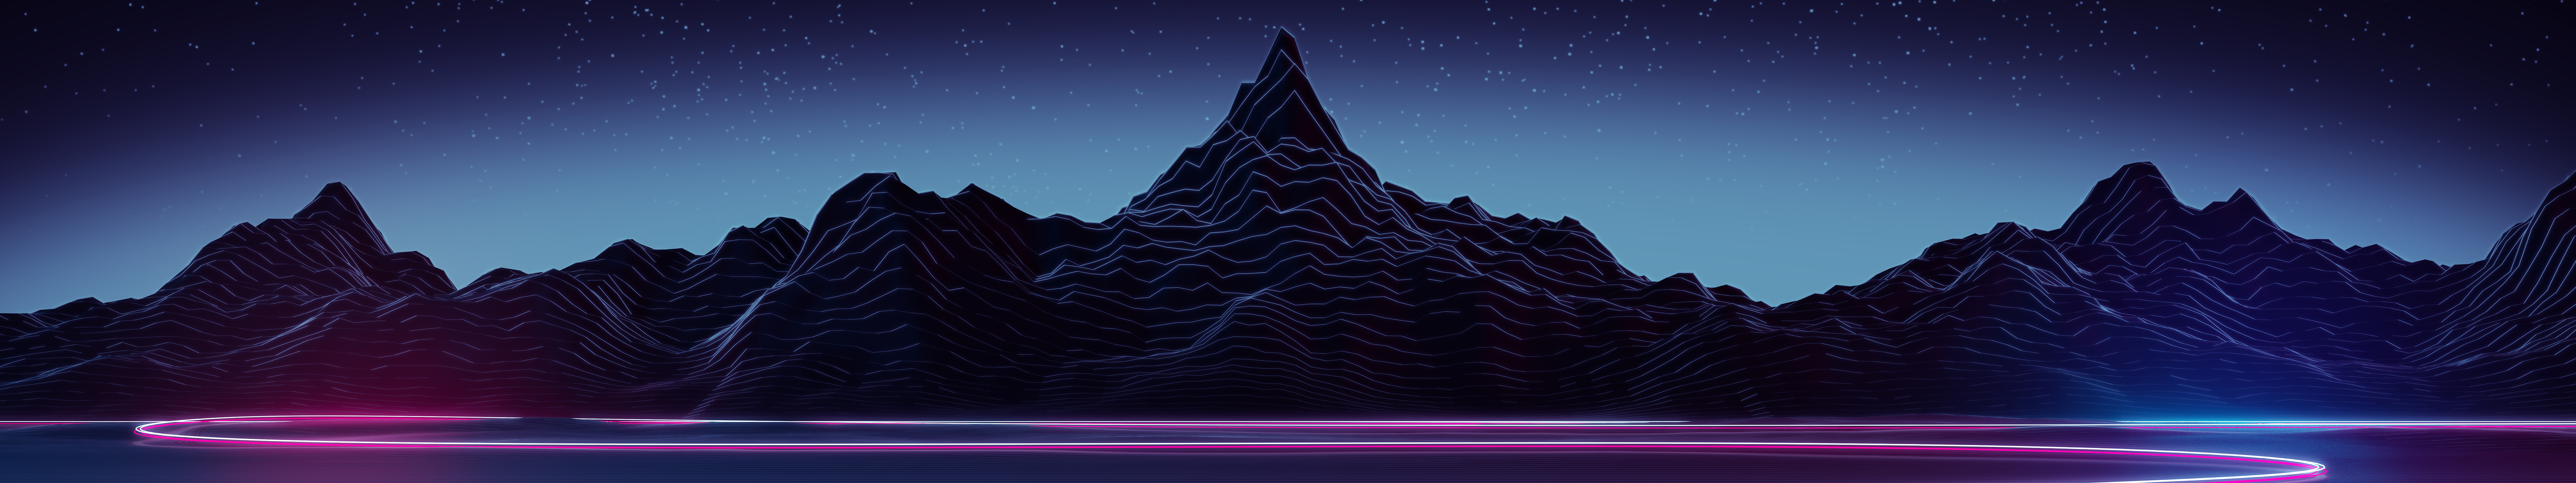 Highway (7680x1440) by AxiomDesign on